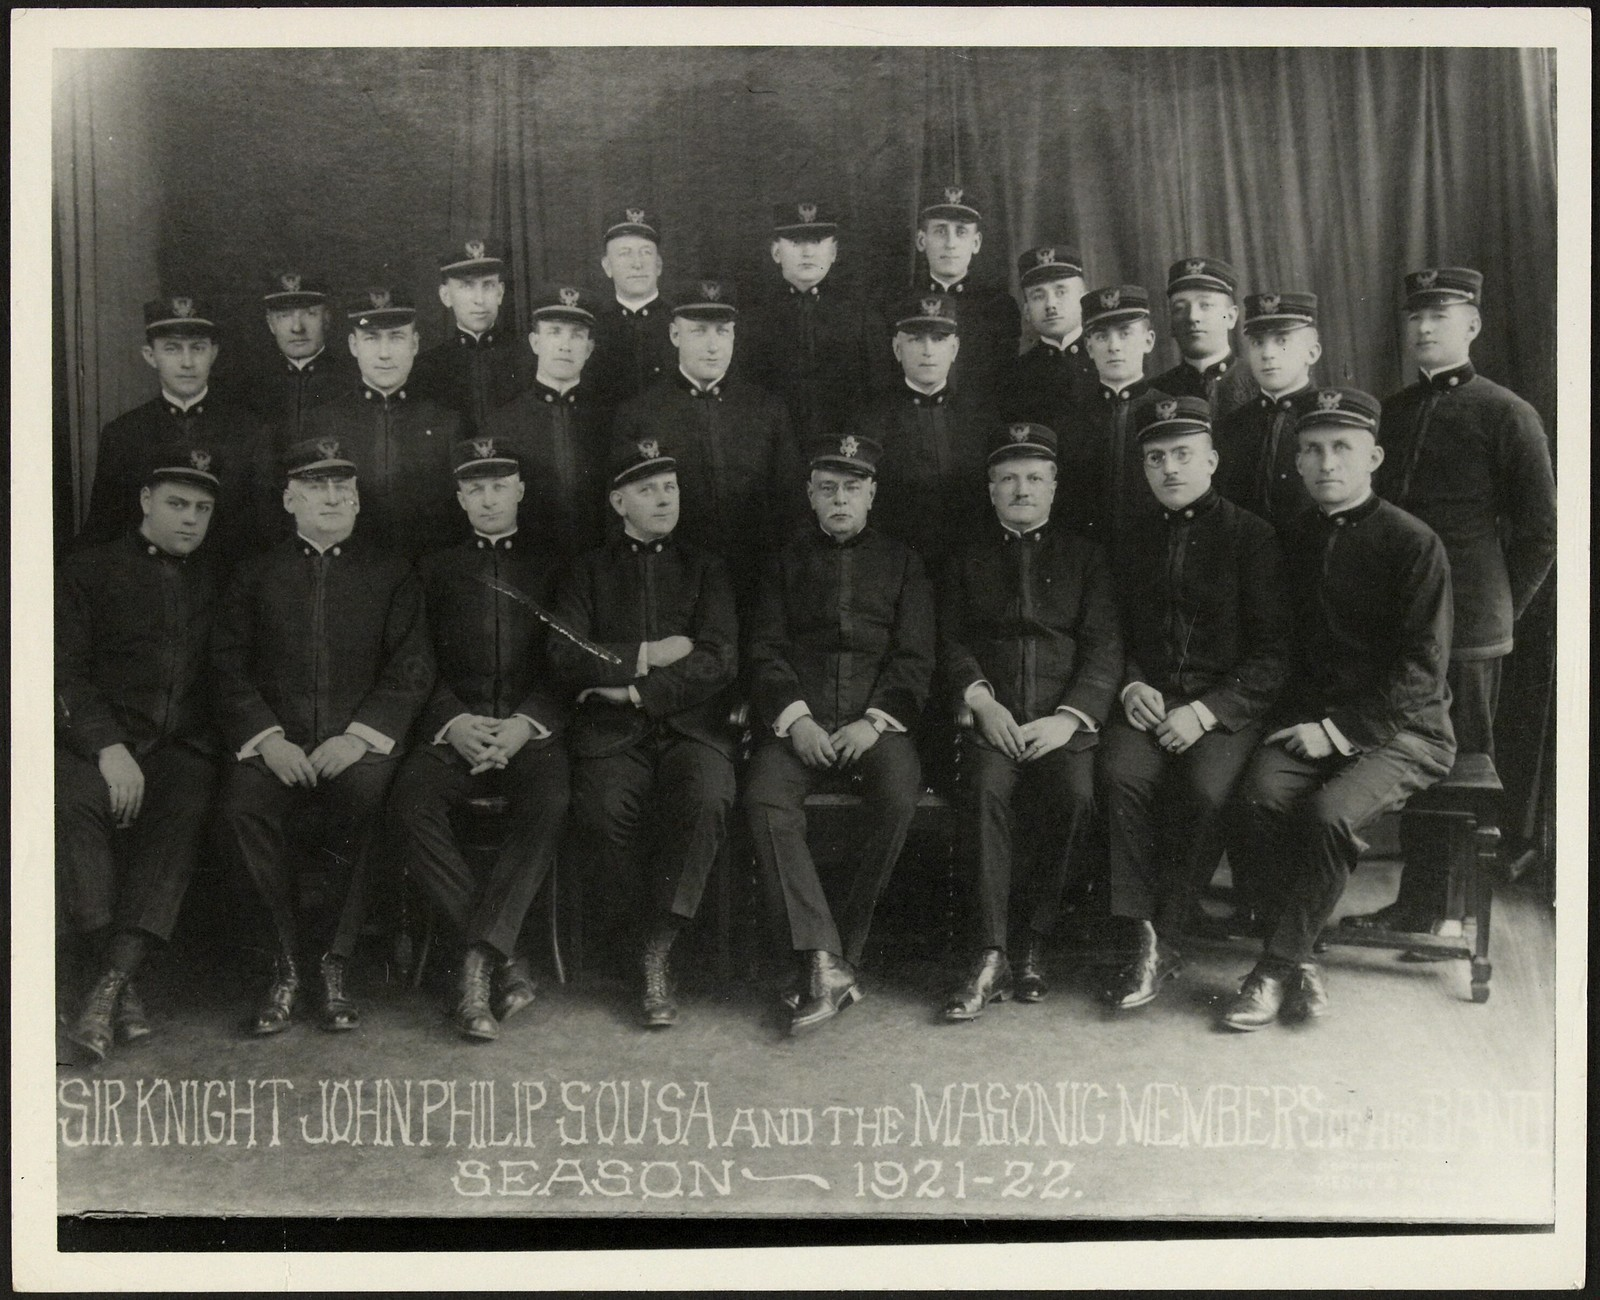 Sousa and the Masonic members of his band